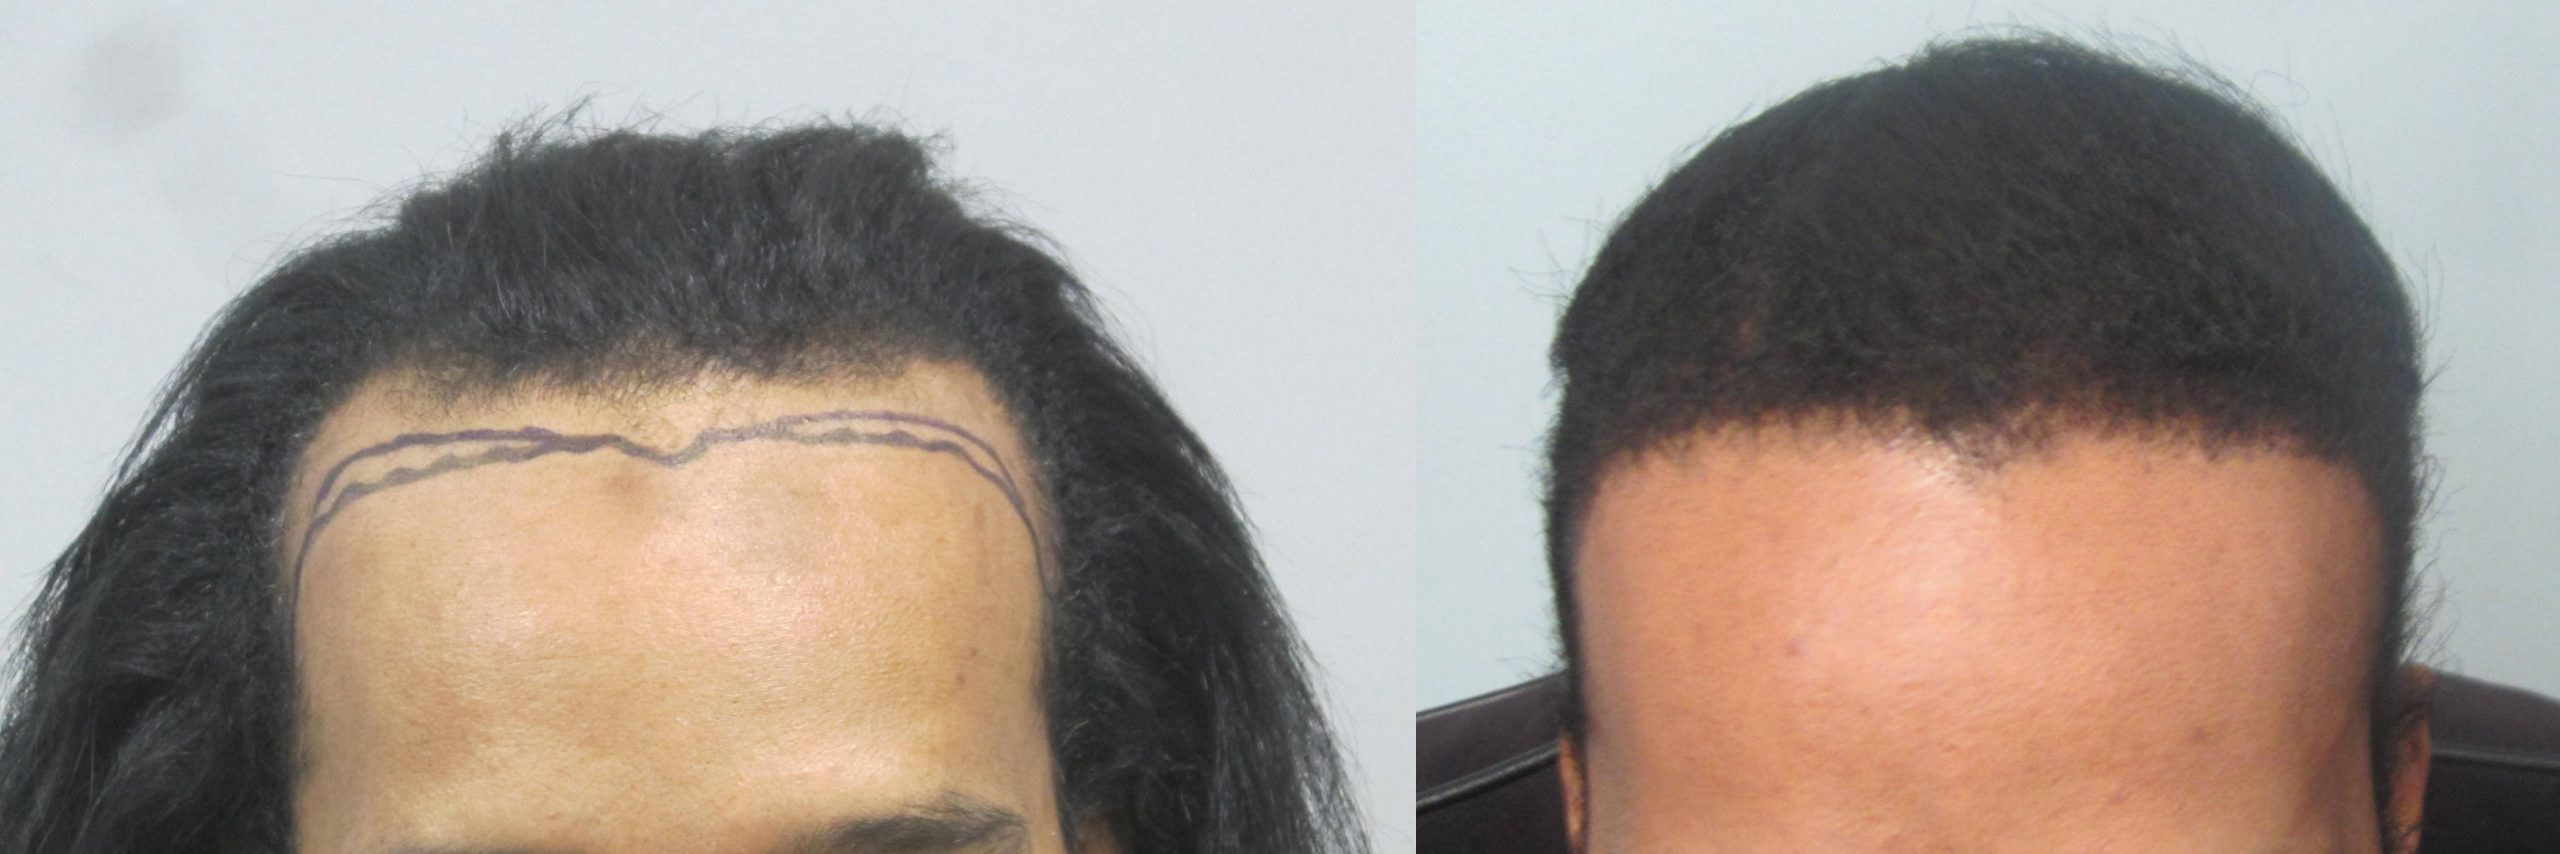 African American Hair Transplant: Frontal view. Dr. Behnam MD ABHRS specializes in African American and curly hair.